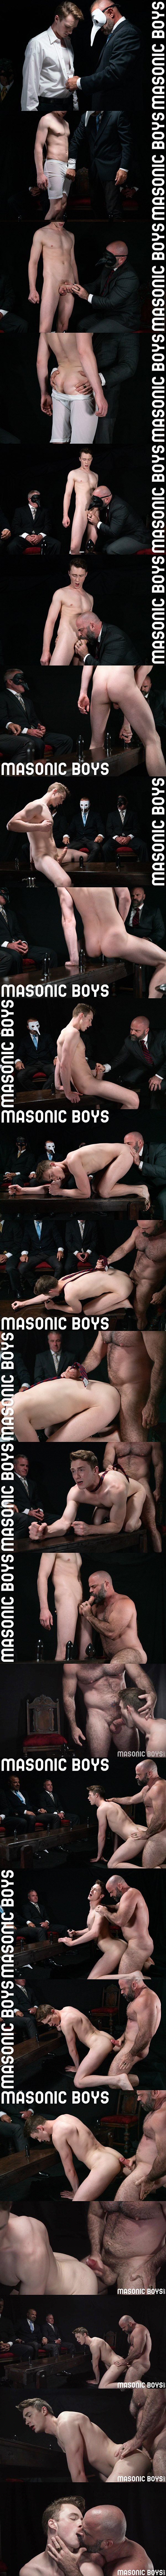 Masculine hairy daddy Bishop Angus barebacks cute twink Cole Blue in an older younger encounter before he breeds Cole in Atonement at Masonicboys 01